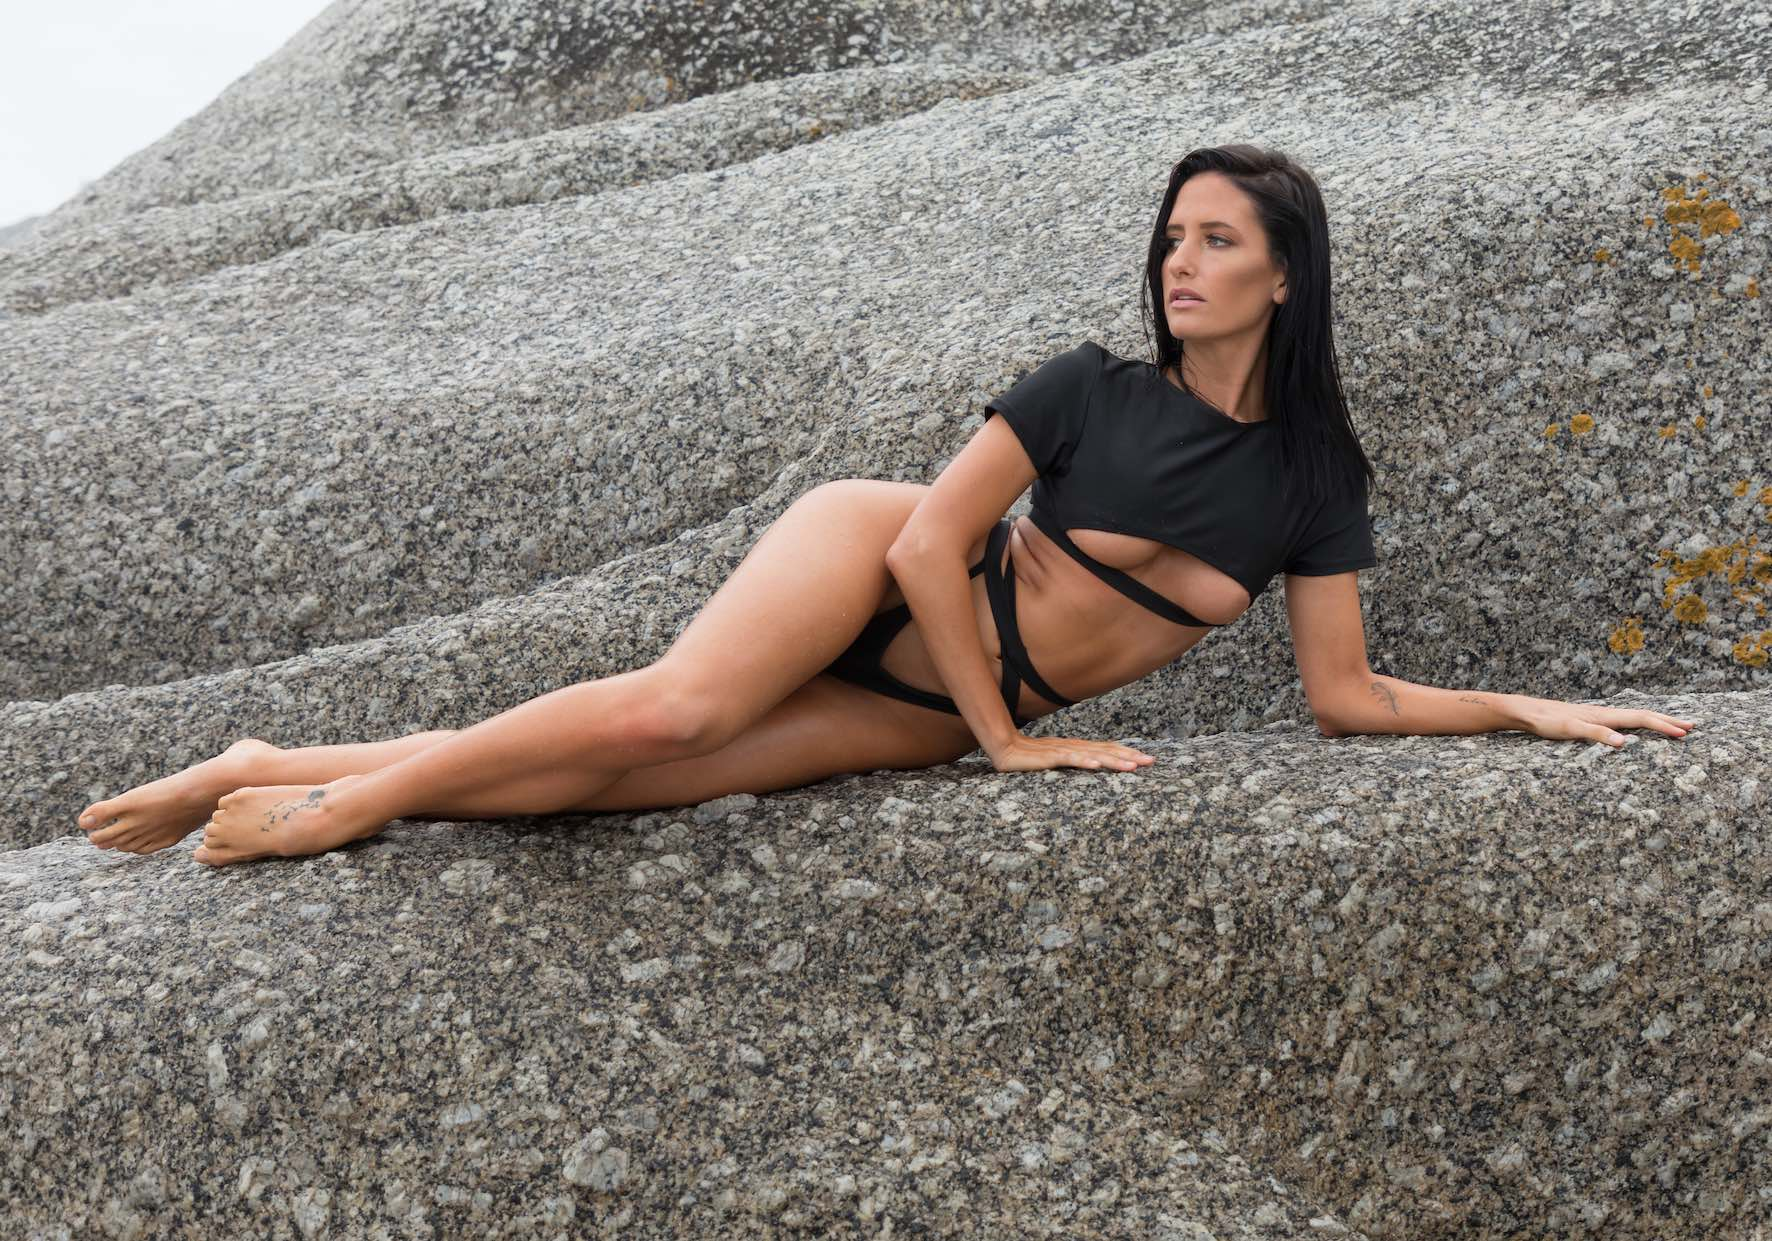 Meet Danielle Lamon as our LW Babe of the Week